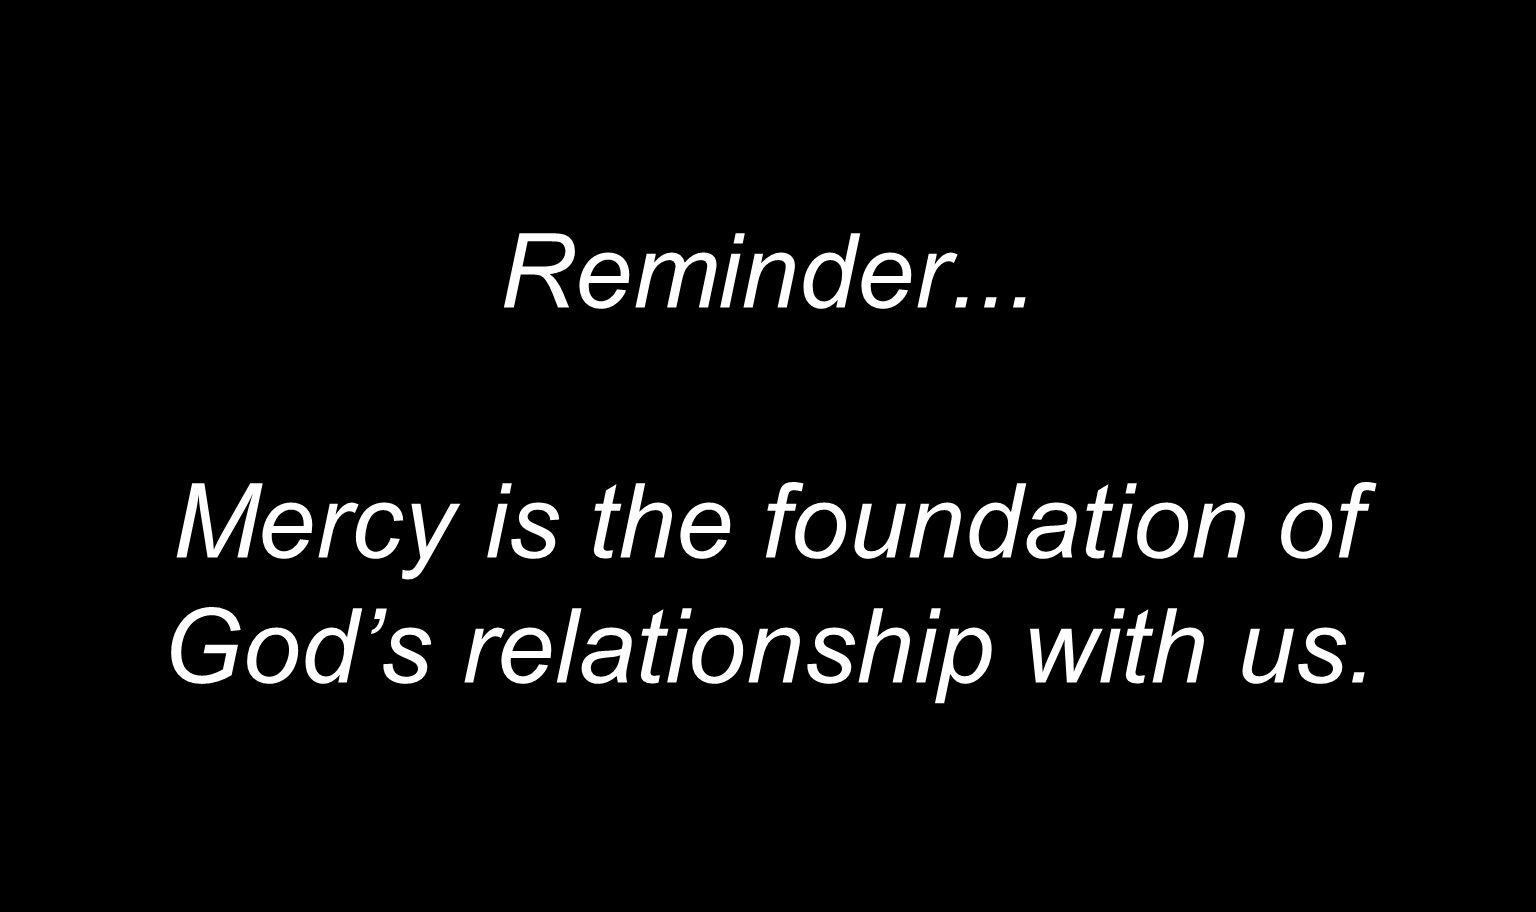 Reminder... Mercy is the foundation of Gods relationship with us.